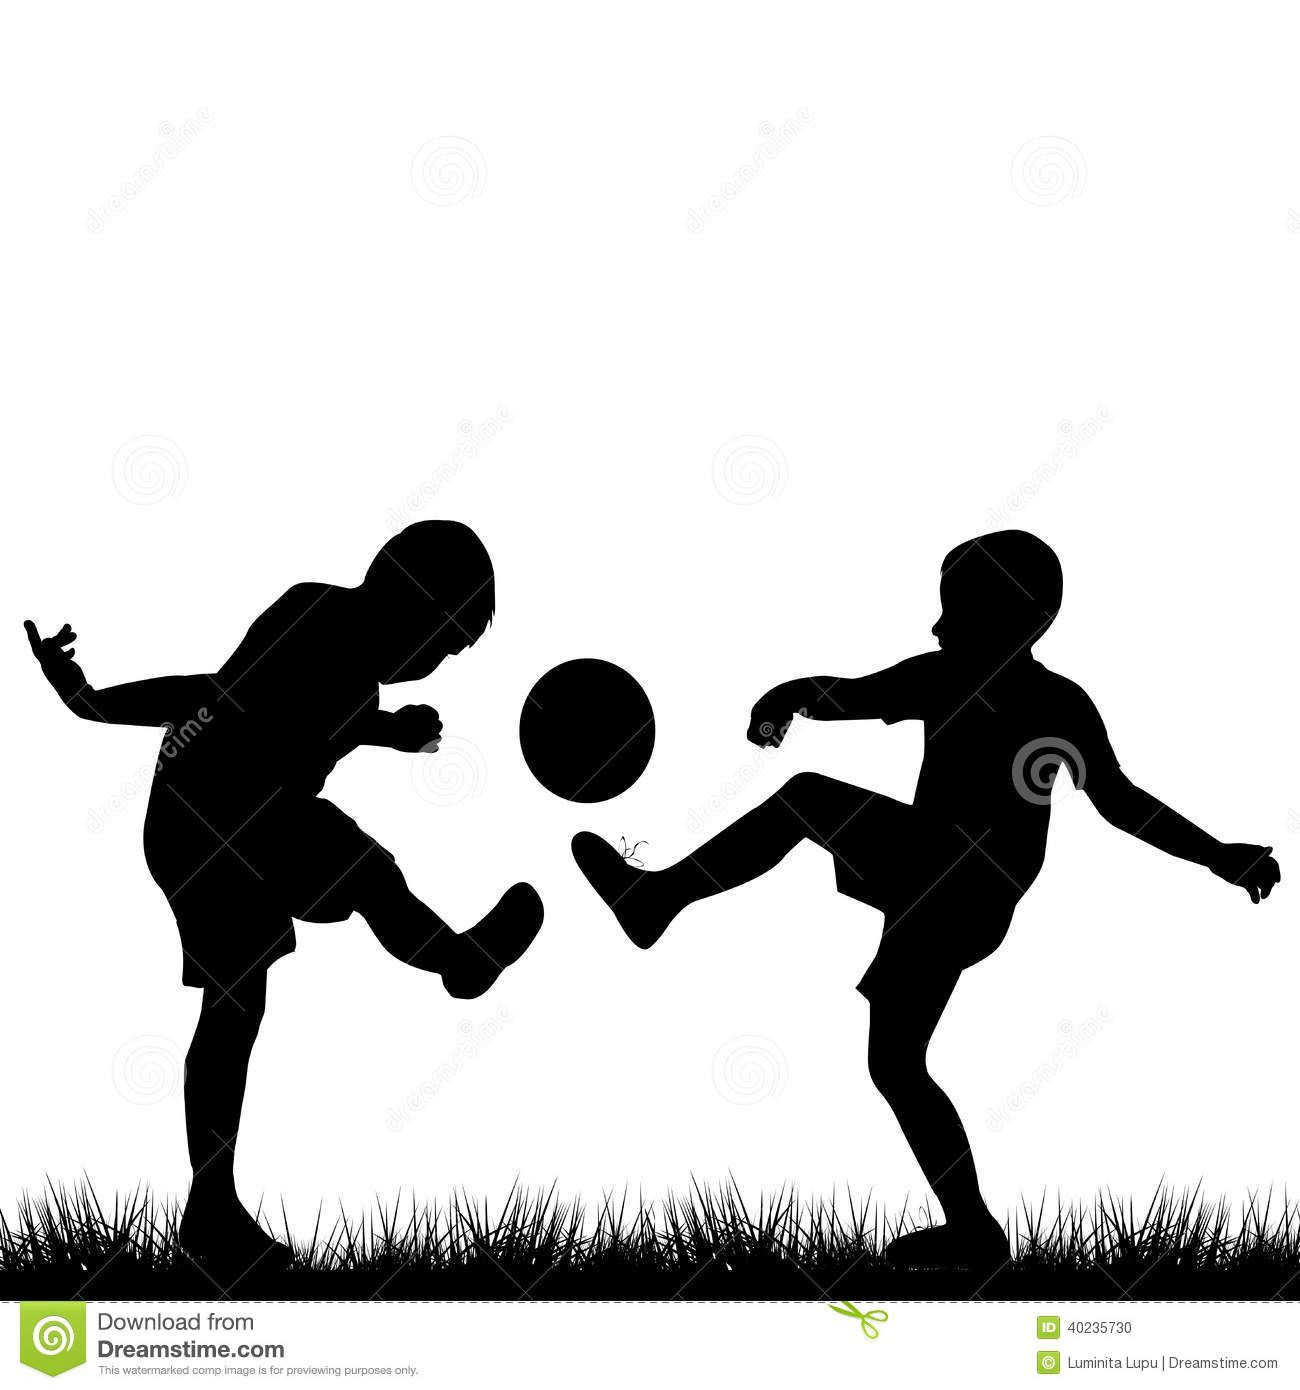 Silhouettes Of Children Playing Football Silhouette Art Silhouette Vintage Kids Photography